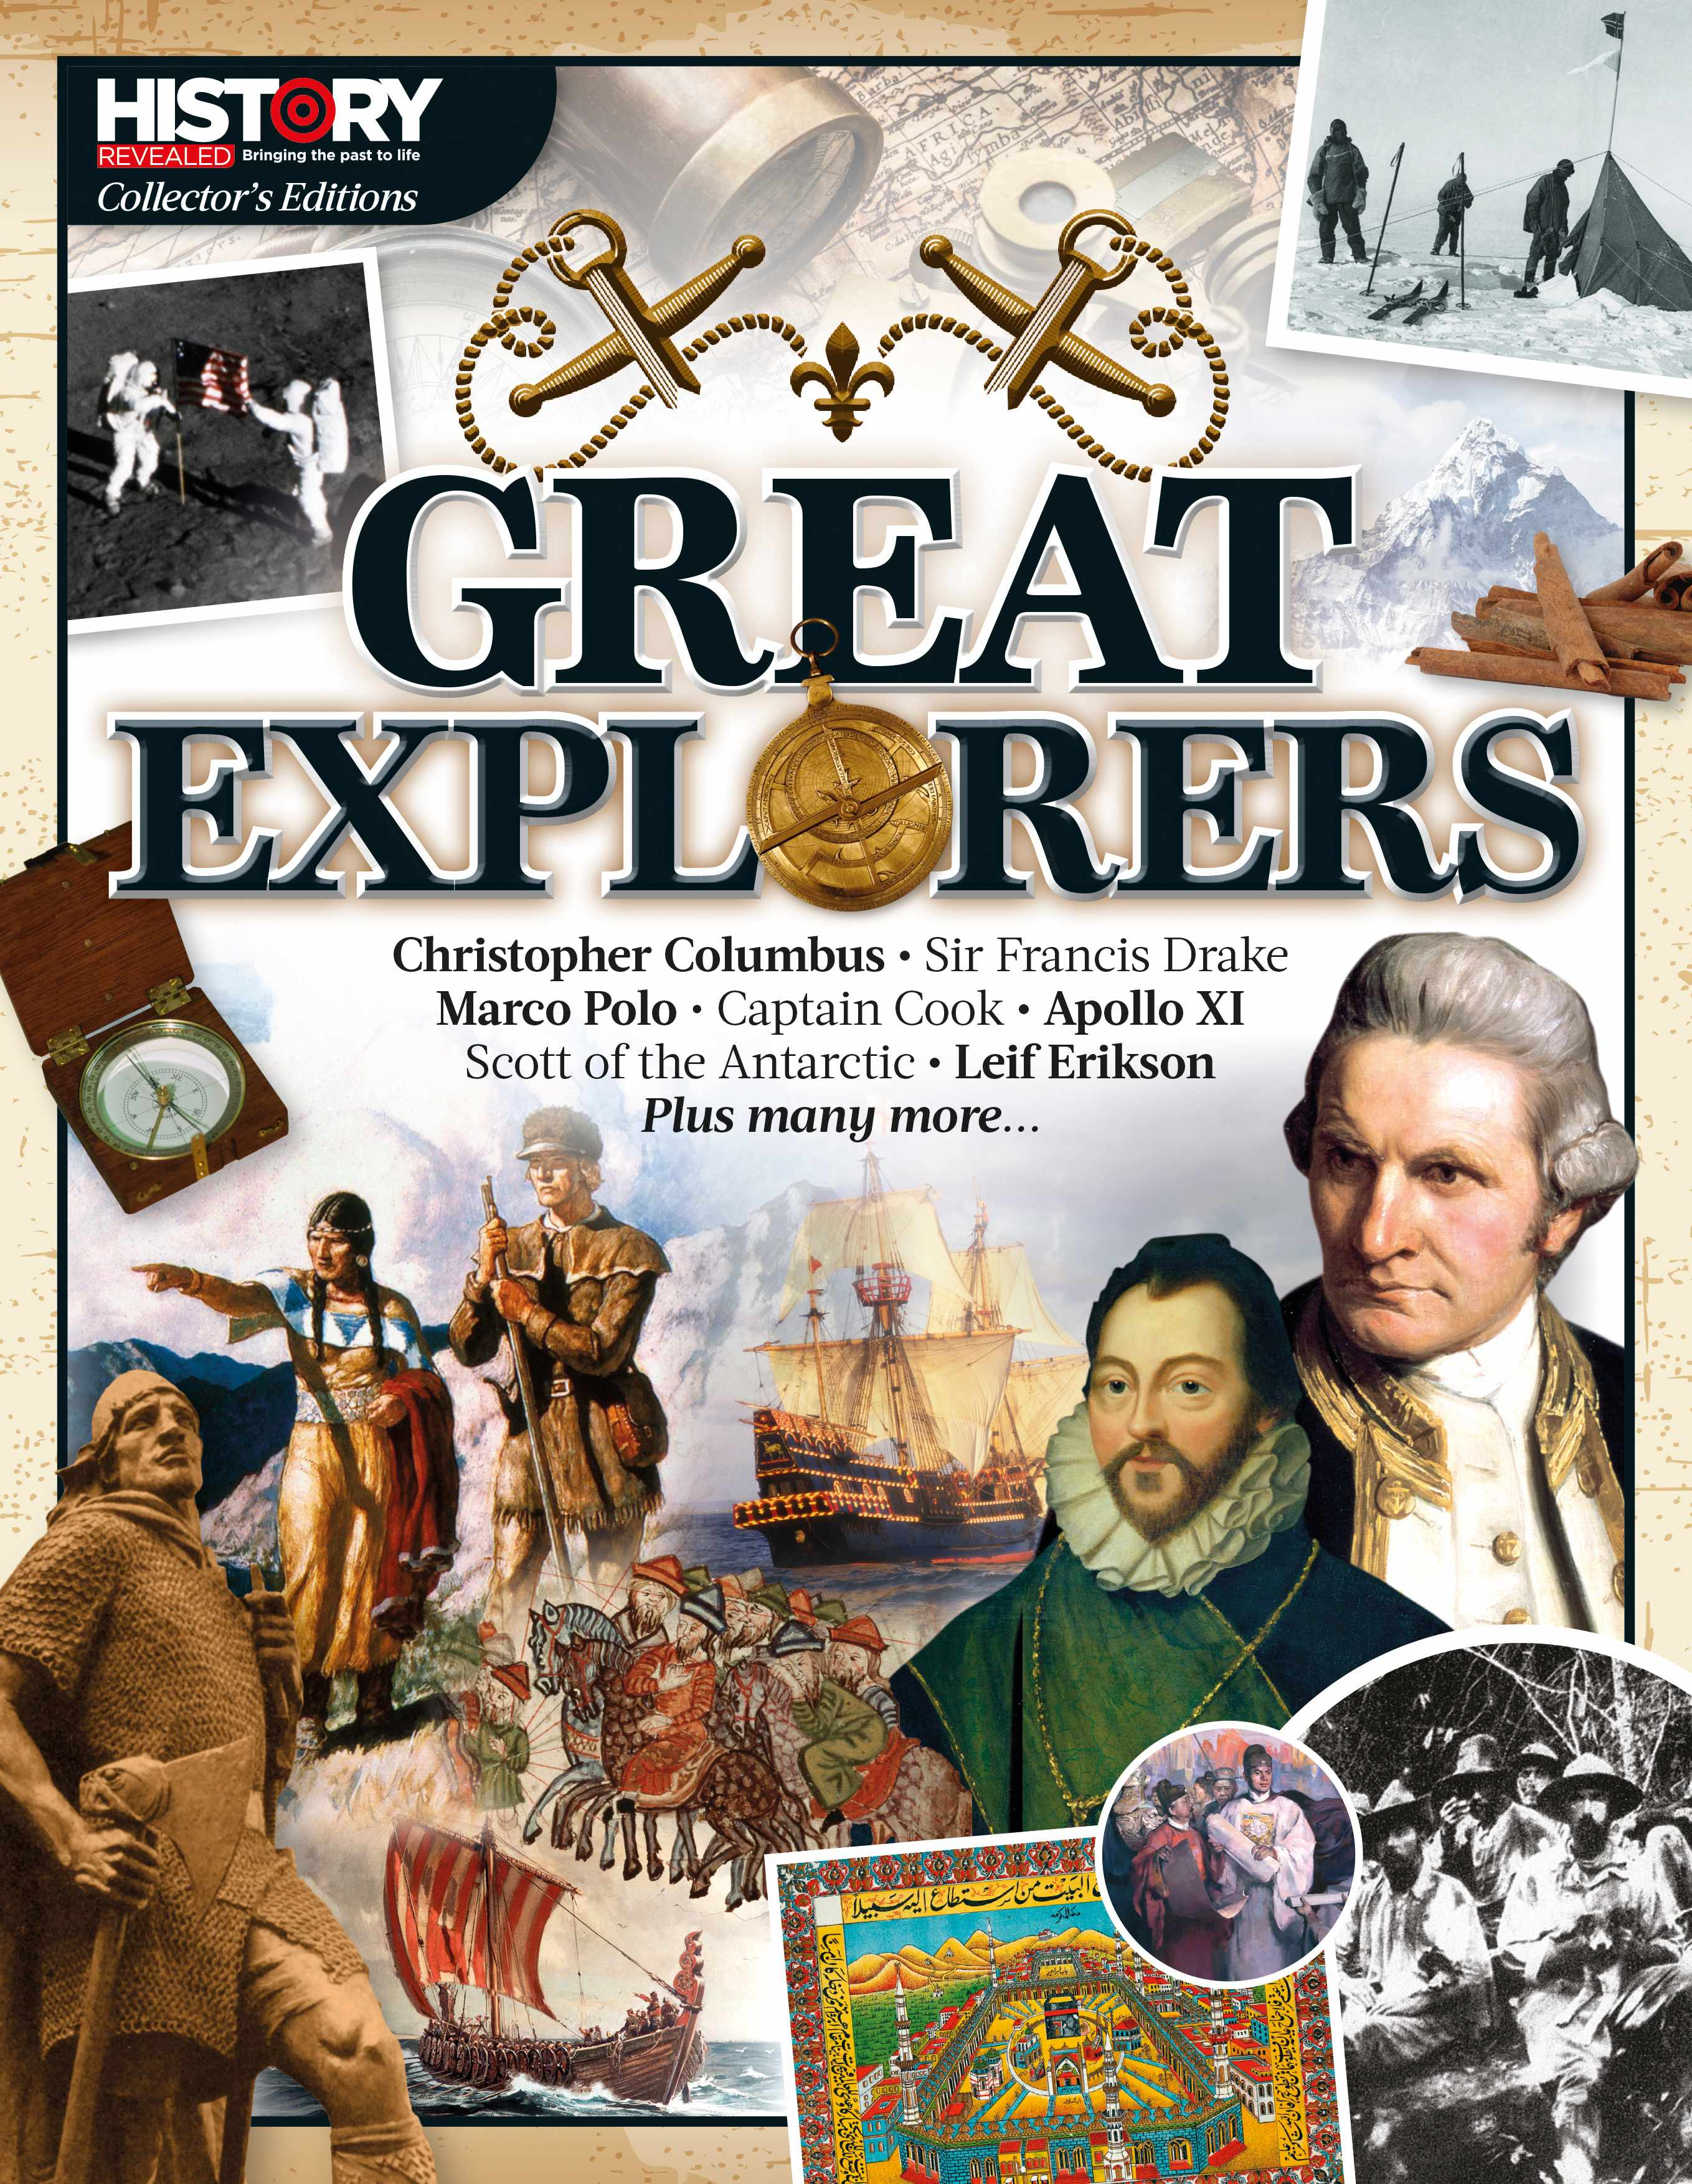 Our Great Explorers special edition is on sale now!